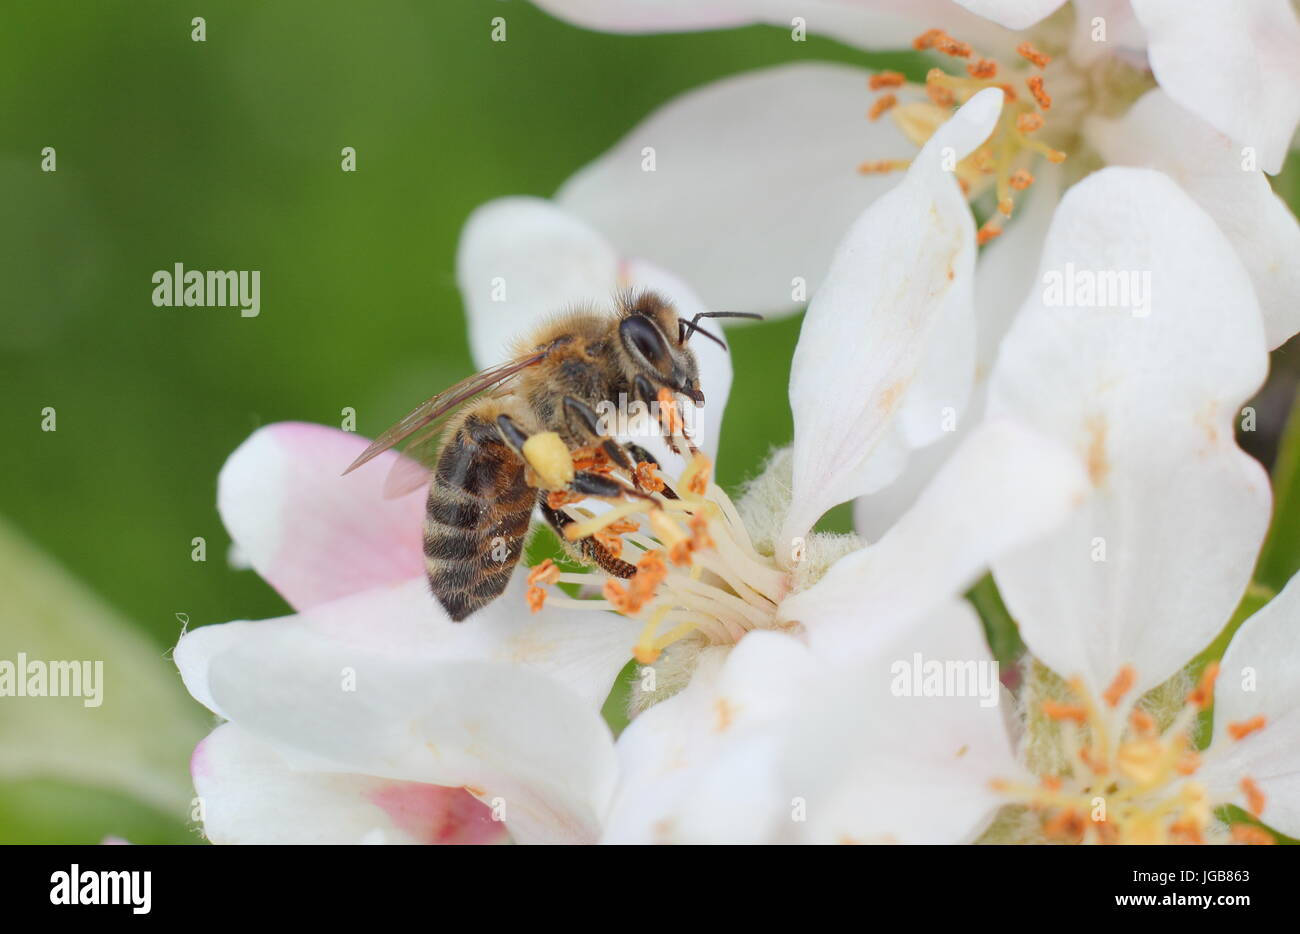 Honey bee (apis mellifera) collecting nectar from the spring blossom of malus domestica 'Katy', apple tree - Stock Image